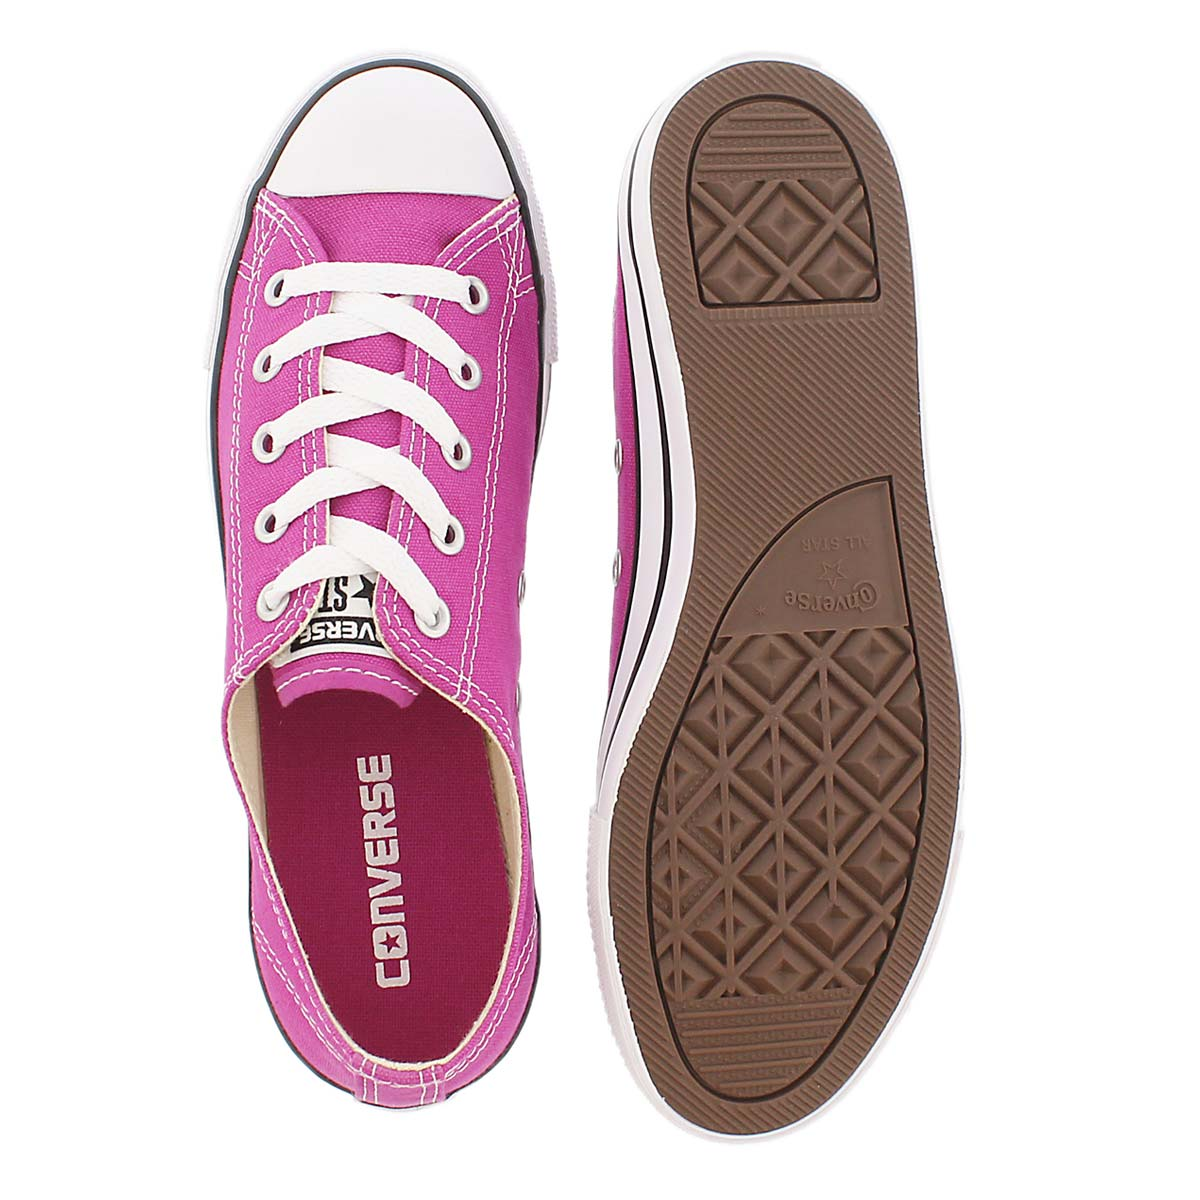 Lds CT AllStar Dainty Canvas pink oxford